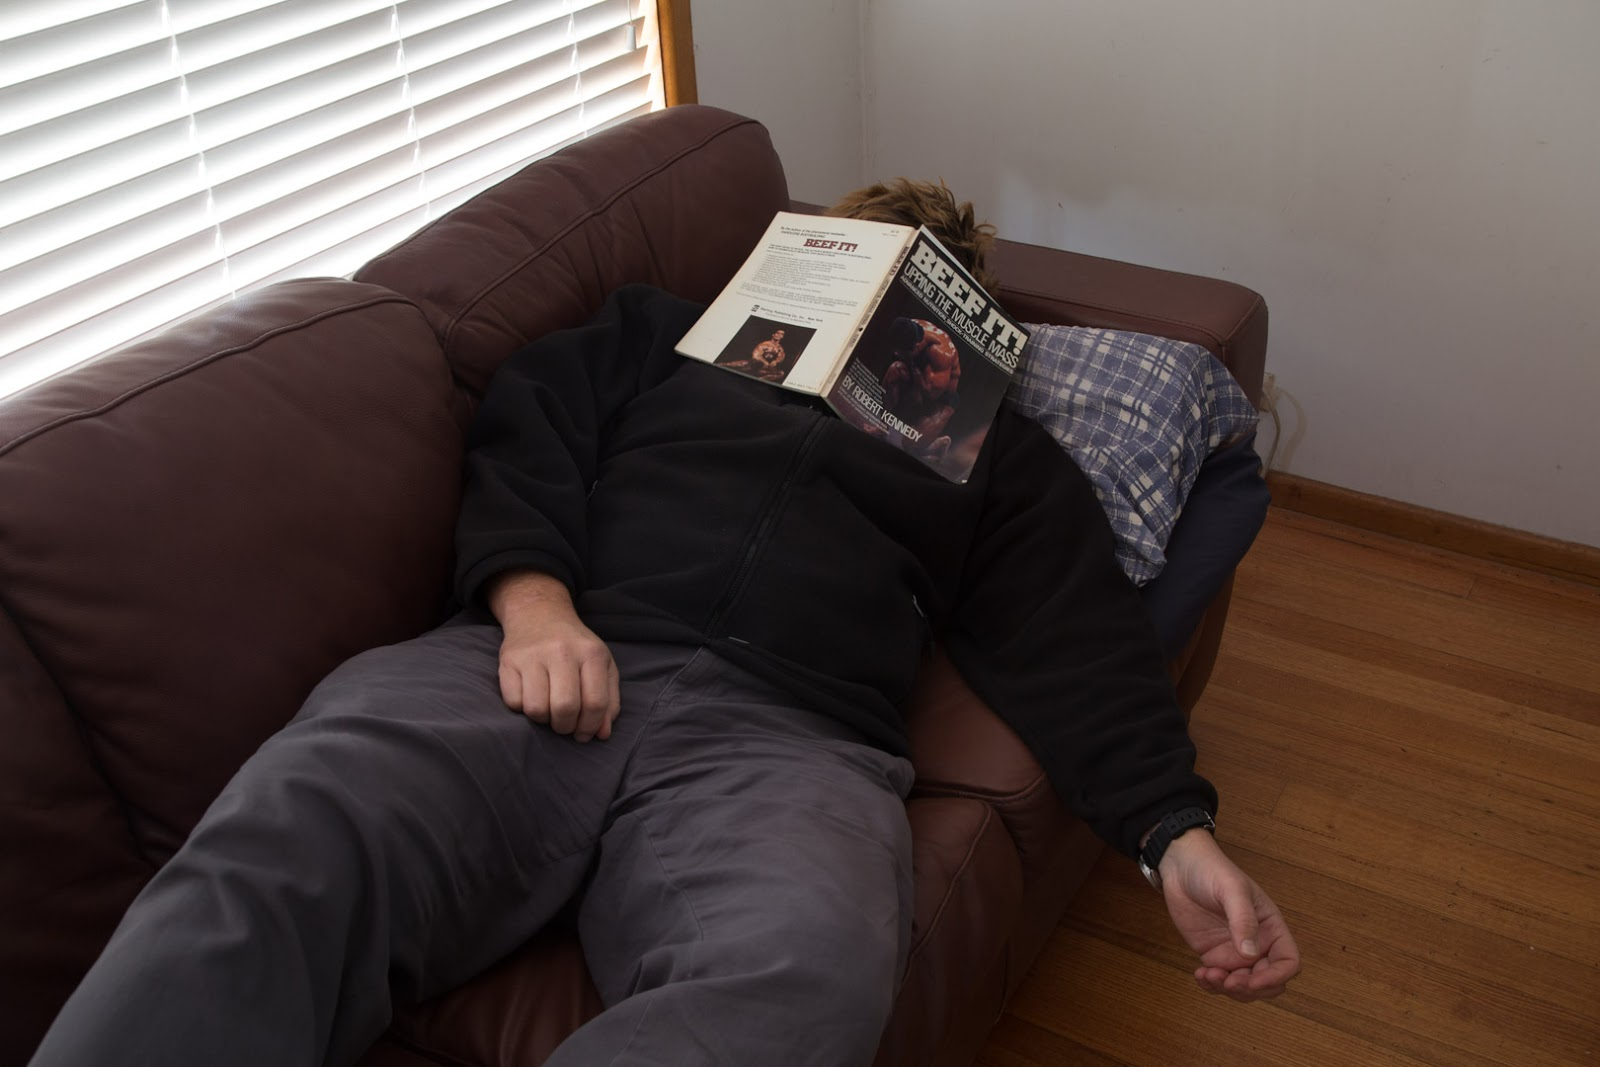 book-over-face-sleeping